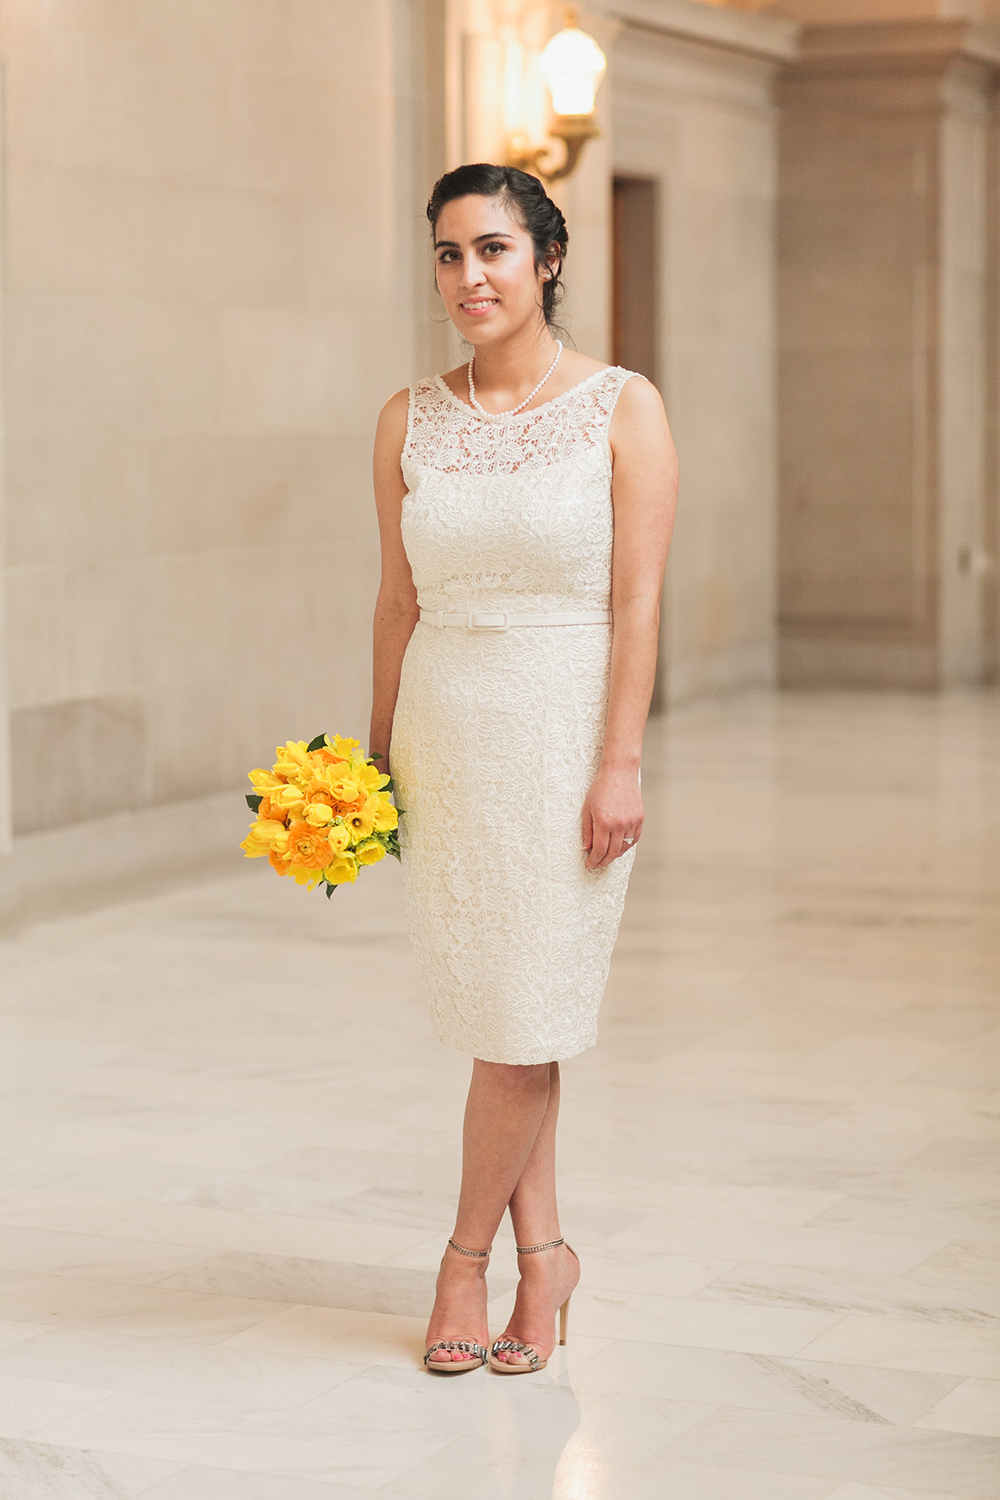 wedding-at-san-francisco-city-hall-02.html